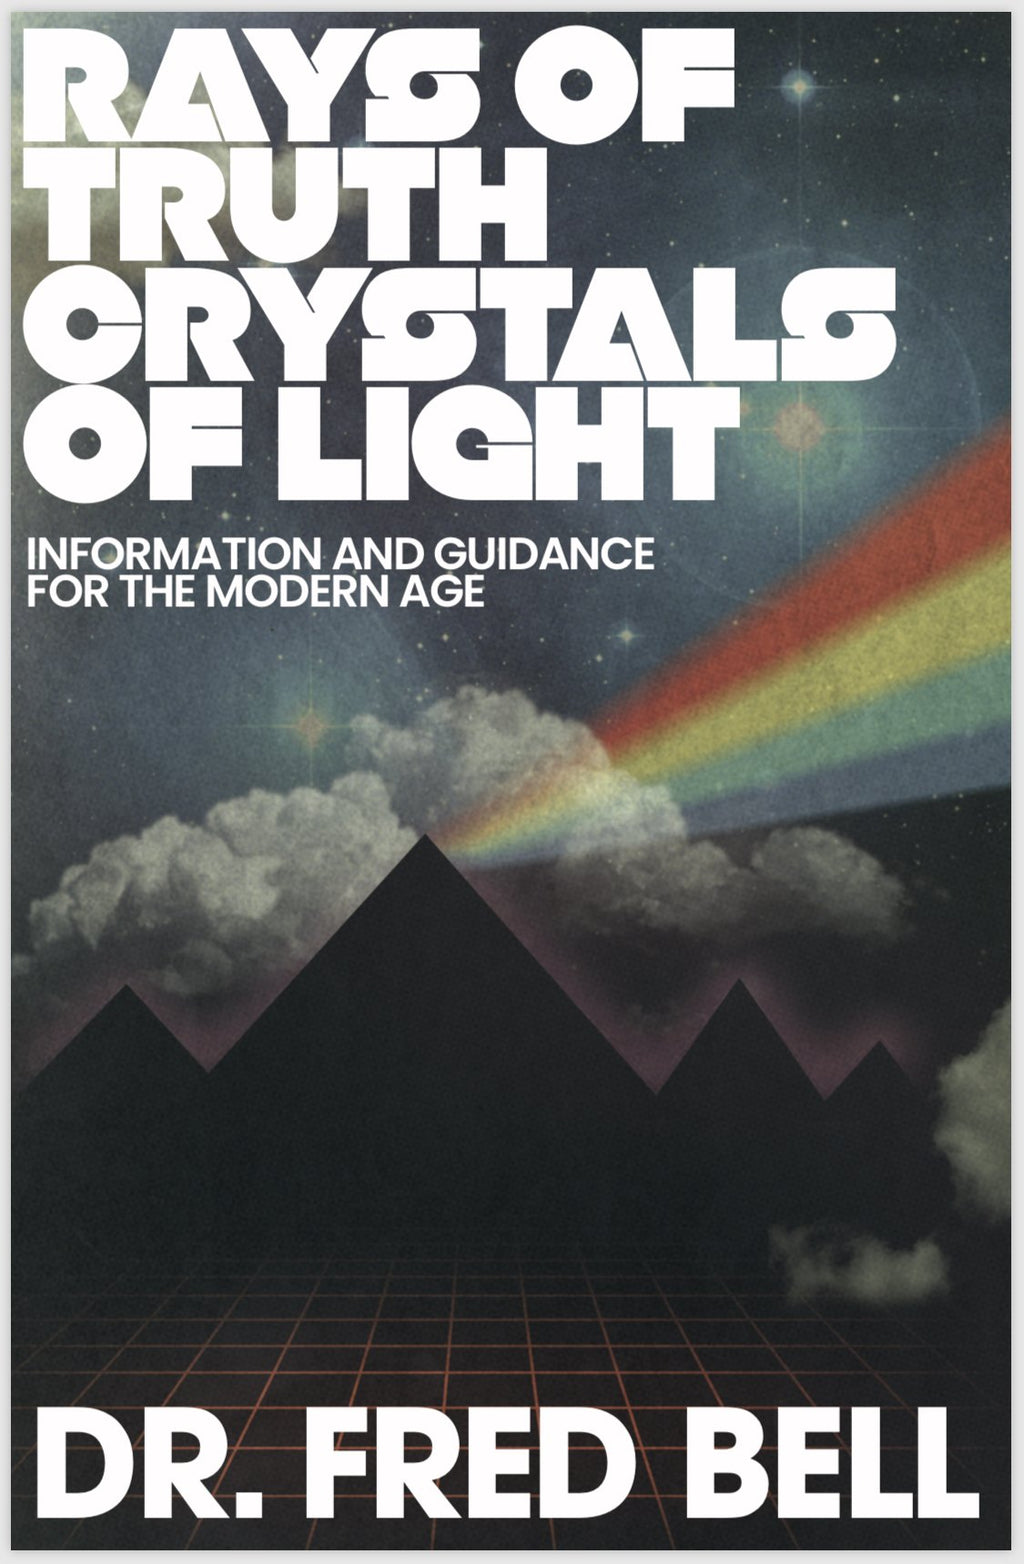 Rays of Truth - Crystals of Light - eBook by Dr. Fred Bell - COMING SOON! - Pyradyne